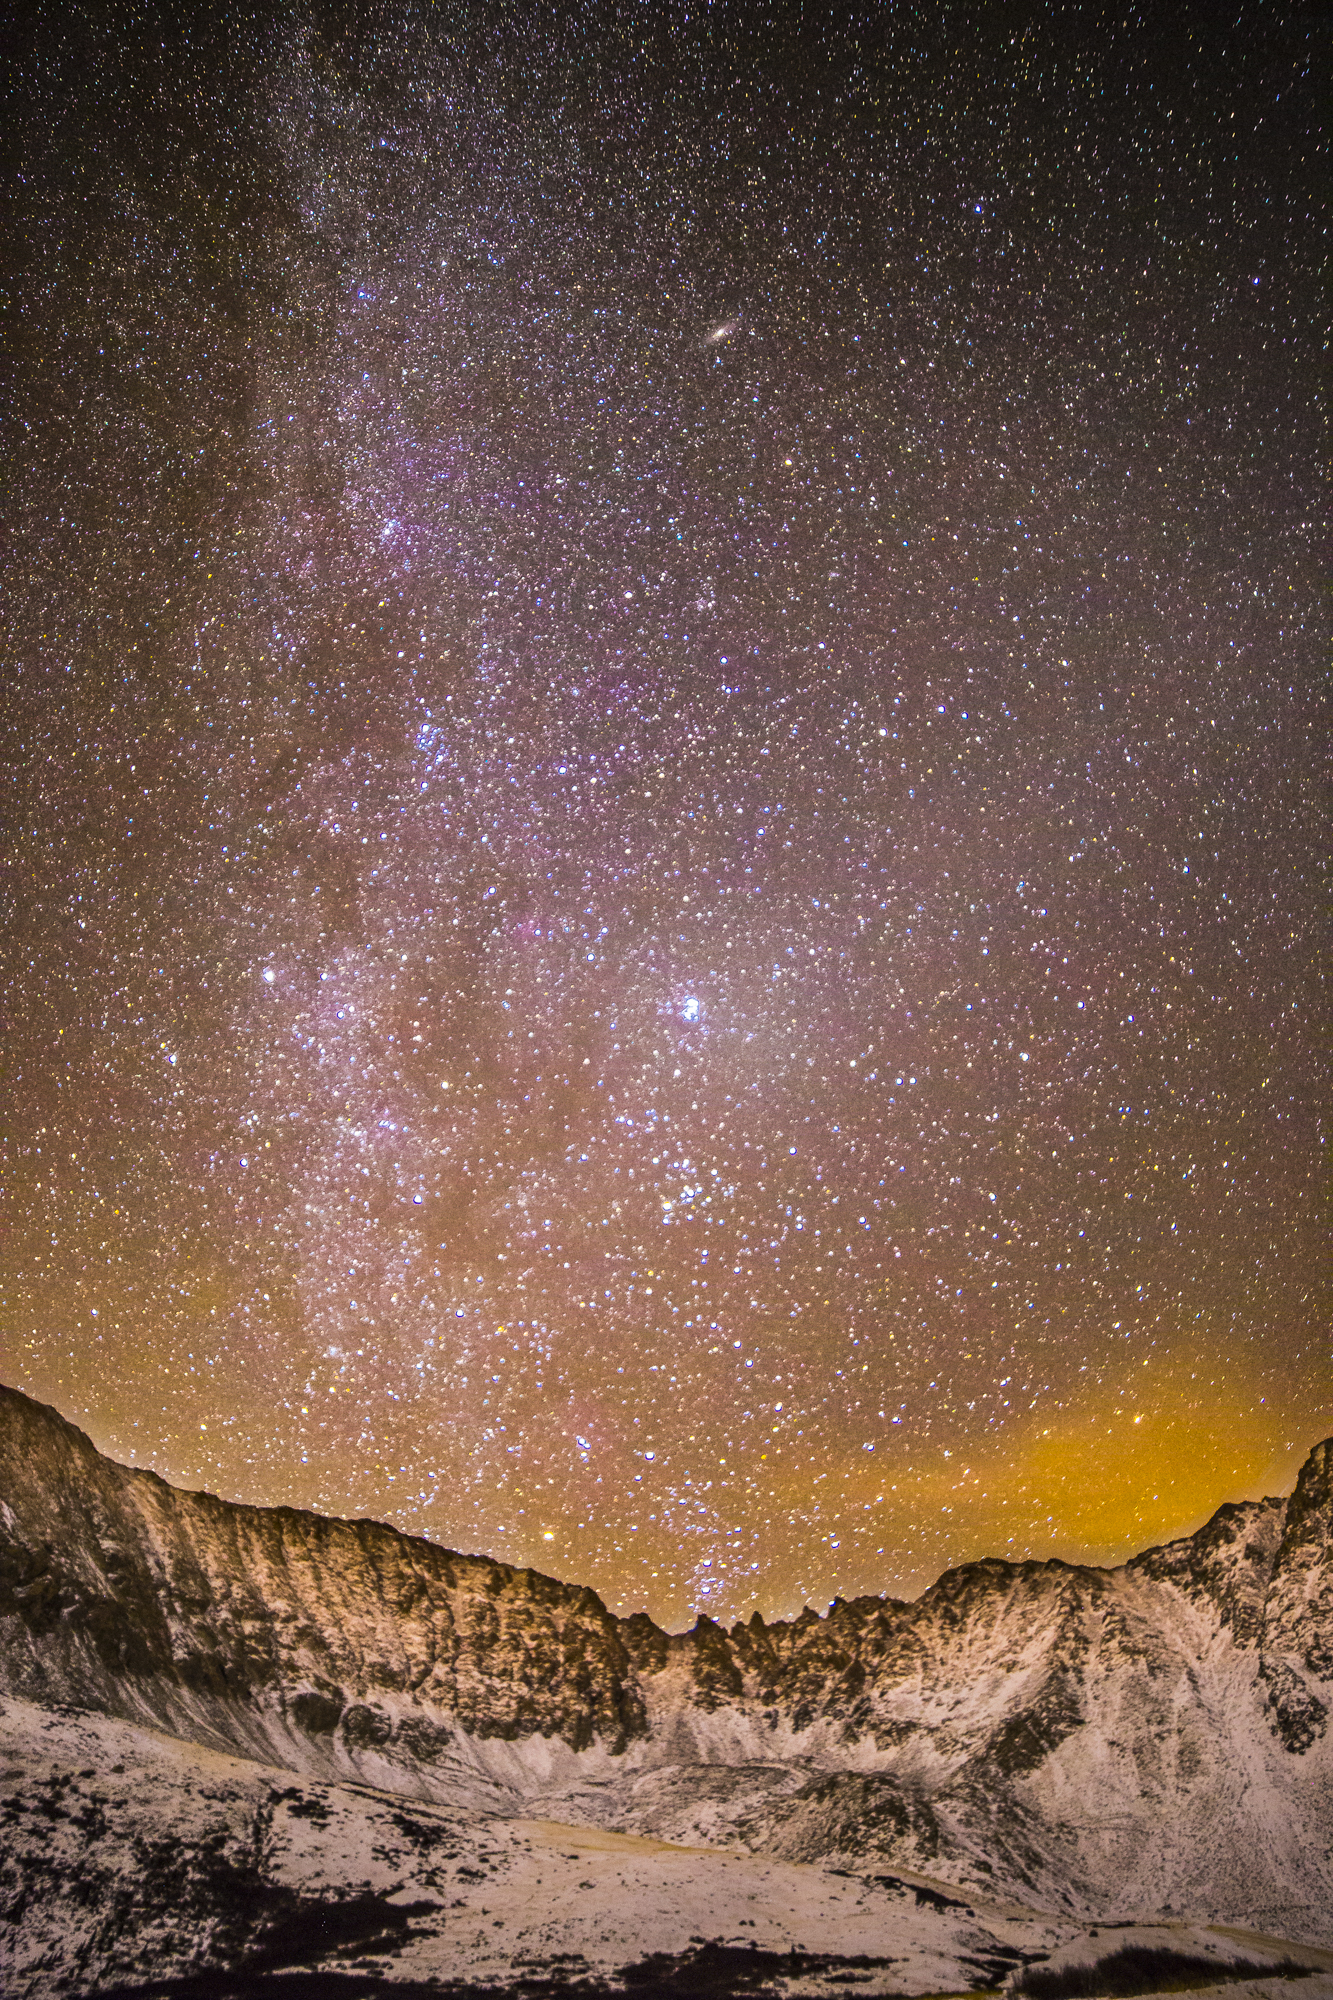 Mayflower gulch Milky Way